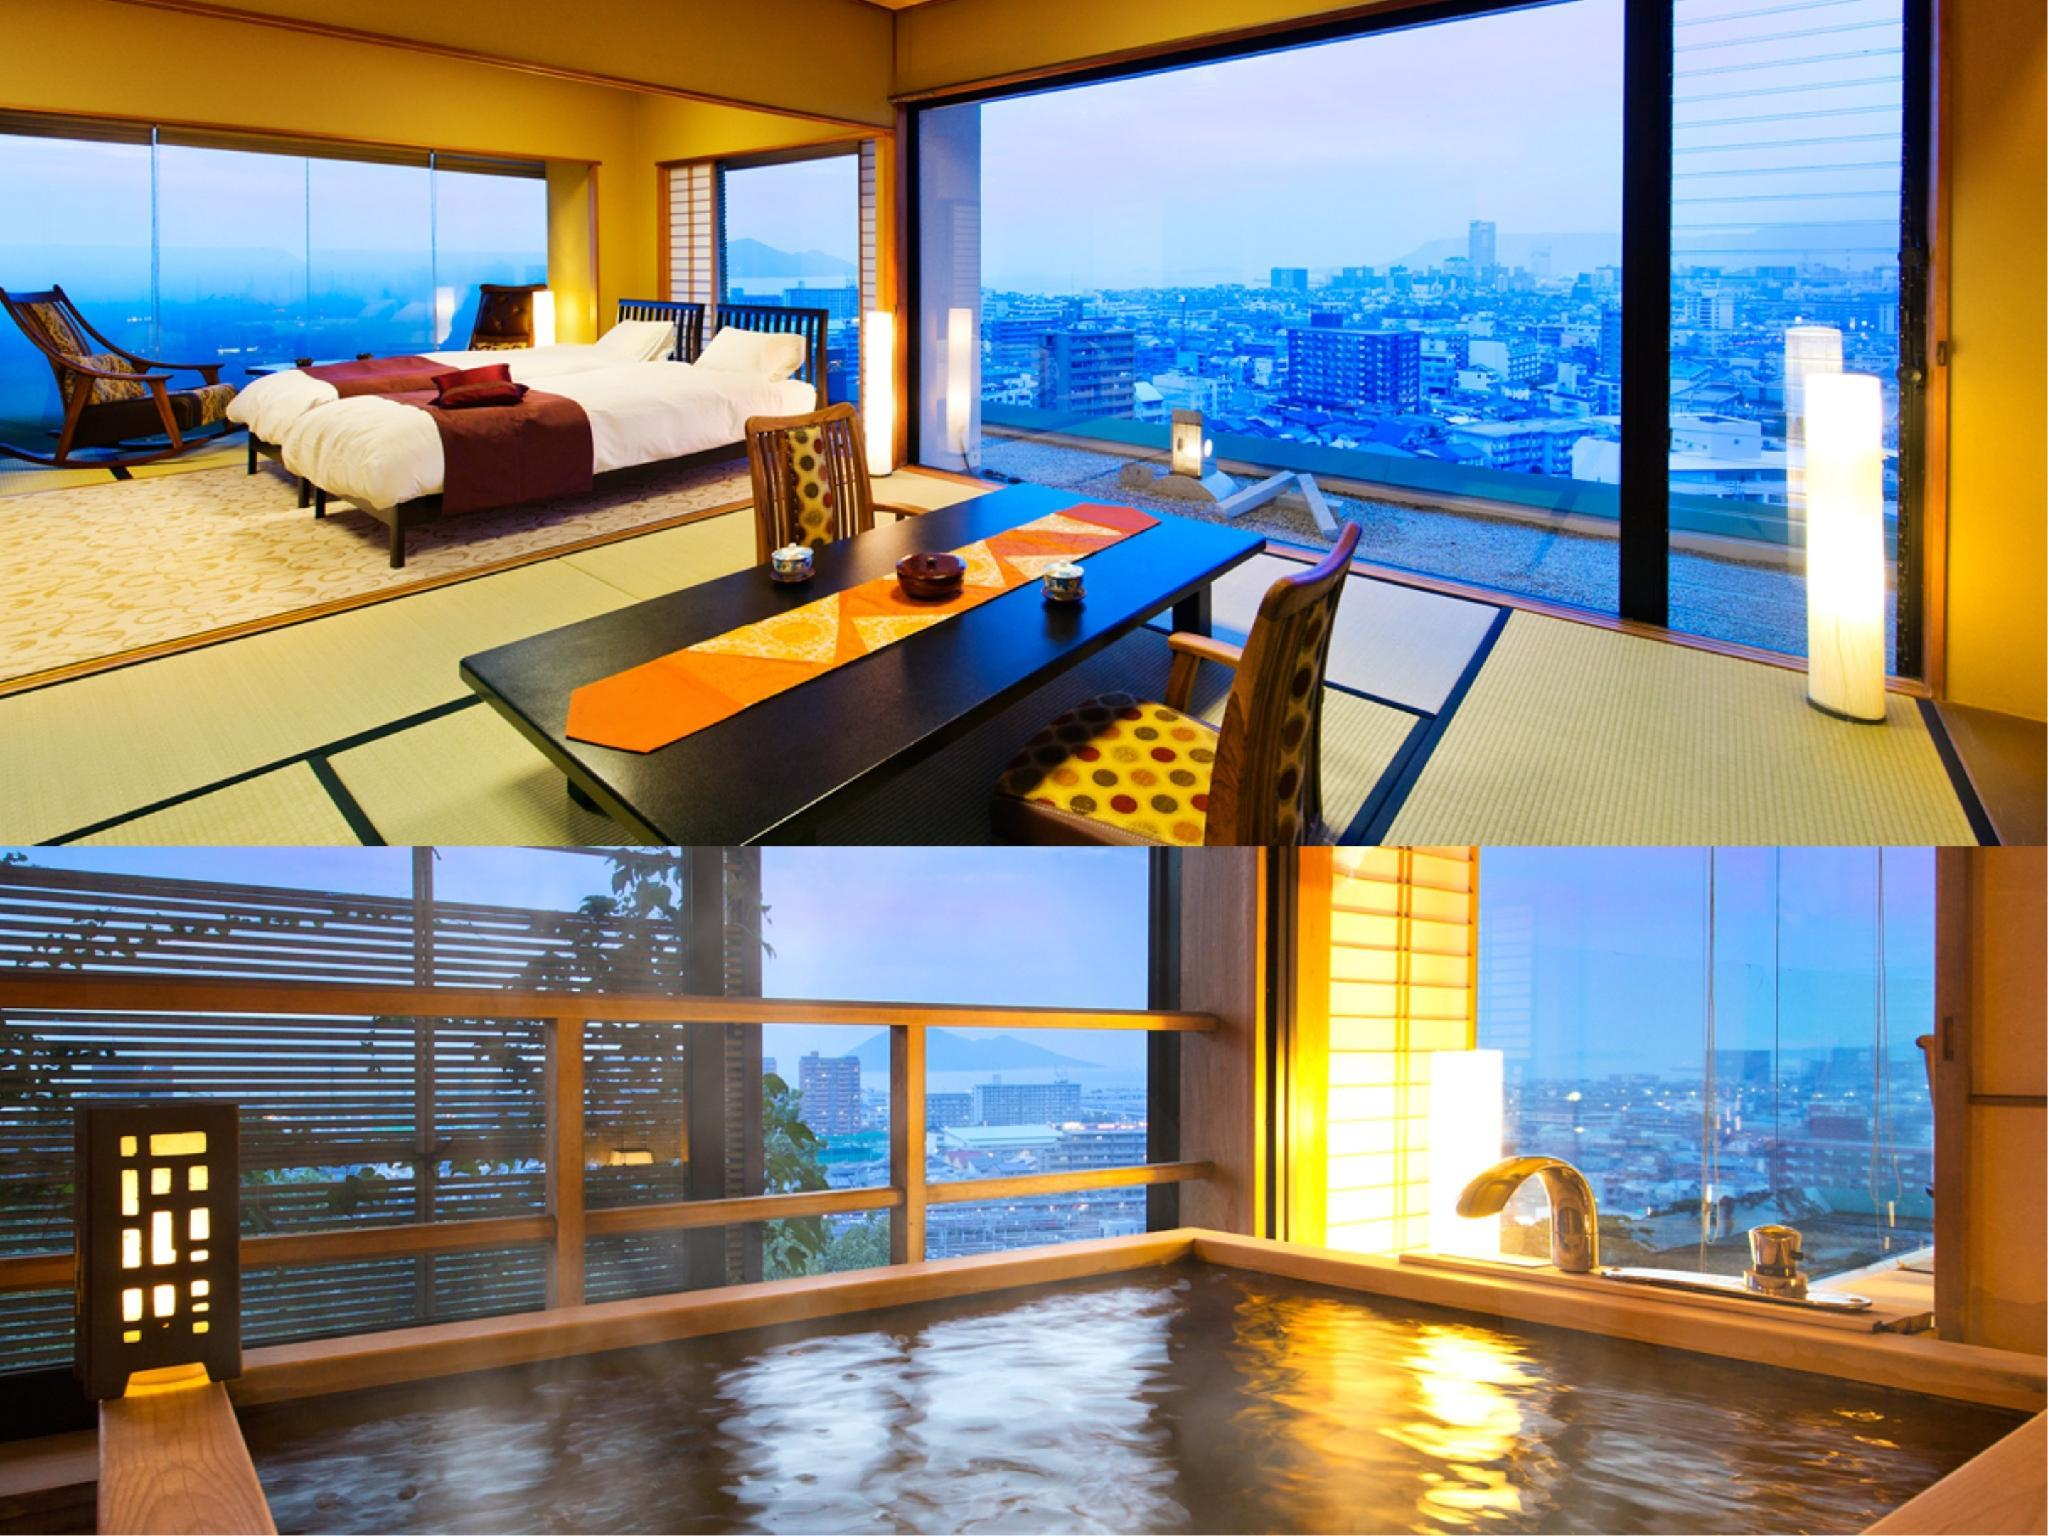 特別房(和洋式房+2張單人床+觀景檜木風呂) (Special Japanese/Western-style Twin Room with Scenic View Cypress Bath)